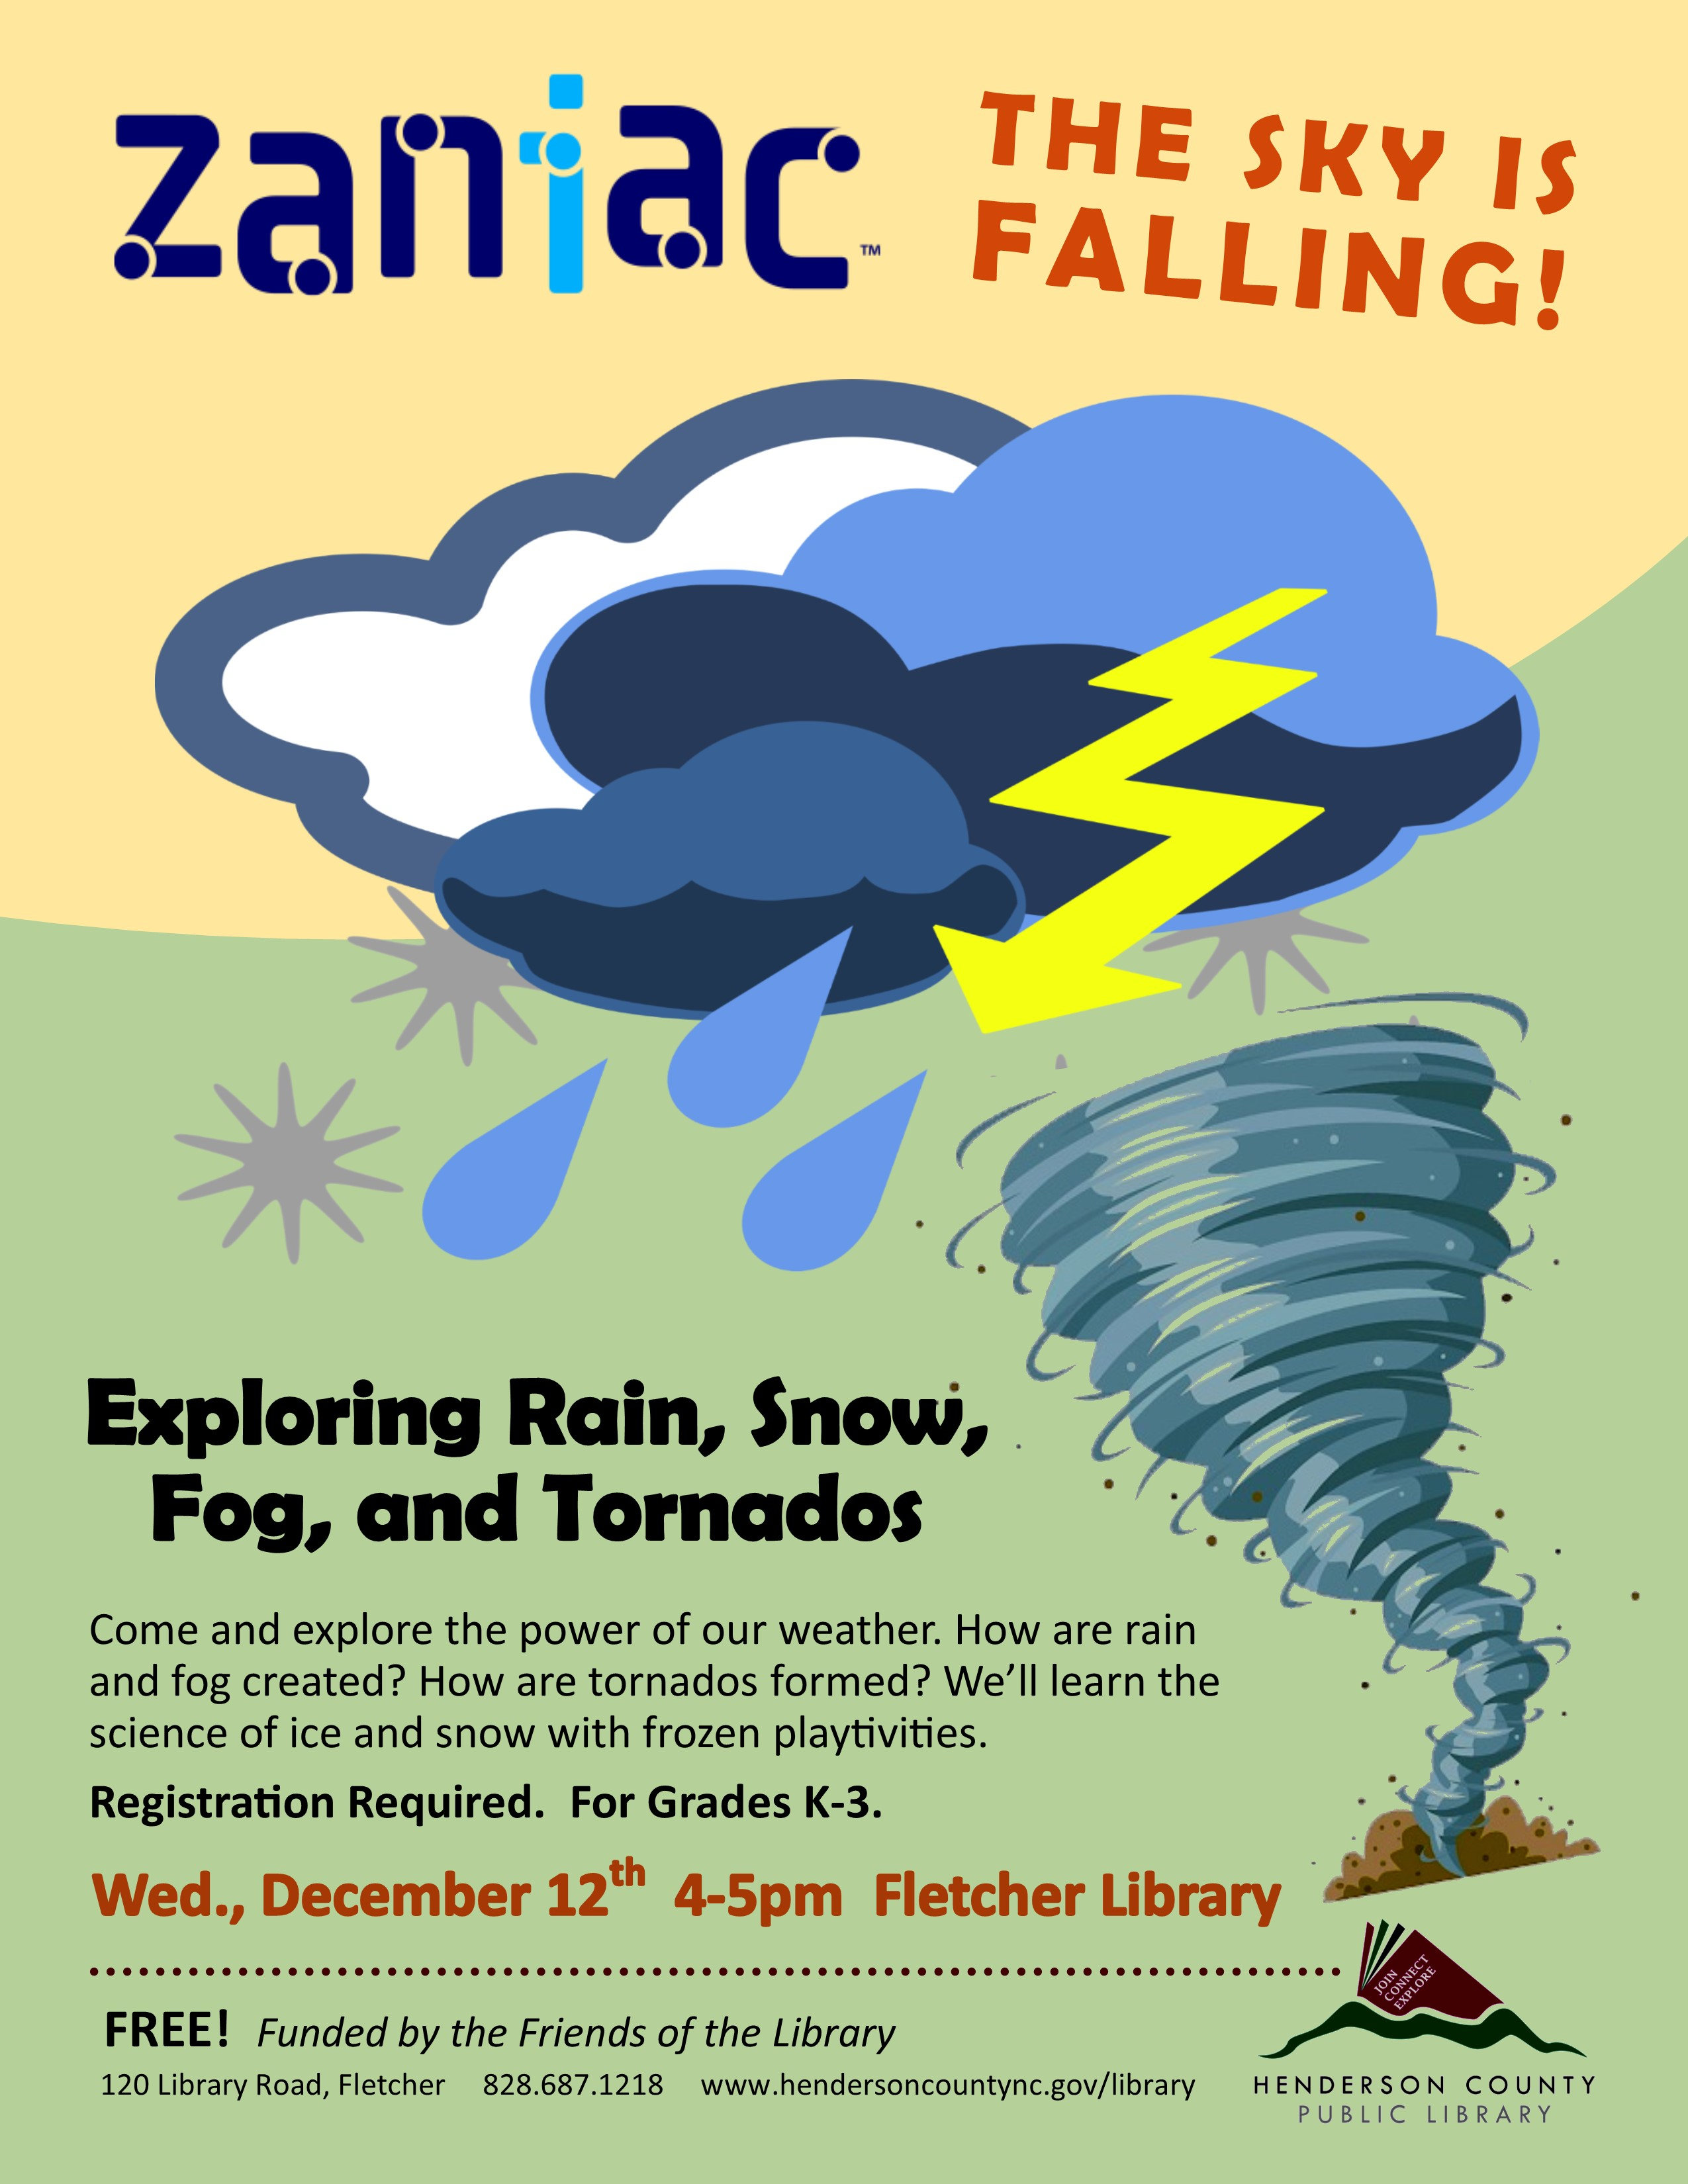 RESCHEDULED: The Sky Is Falling! Exploring Rain, Snow, Fog, and Tornados